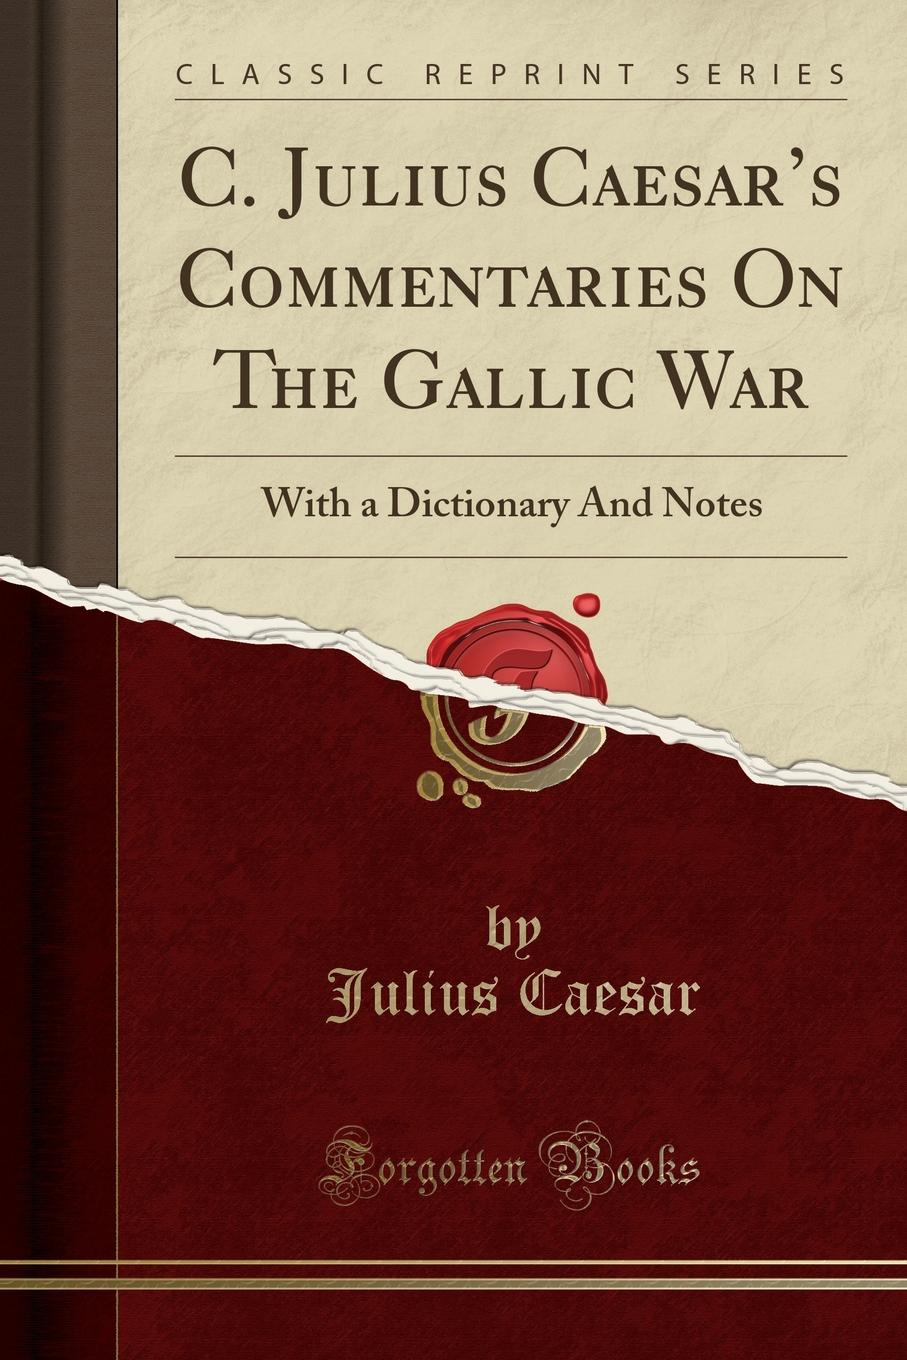 Julius Caesar C. Julius Caesar.s Commentaries On The Gallic War. With a Dictionary And Notes (Classic Reprint) the eye of the world the wheel of time book 2 chinese edition 400 page